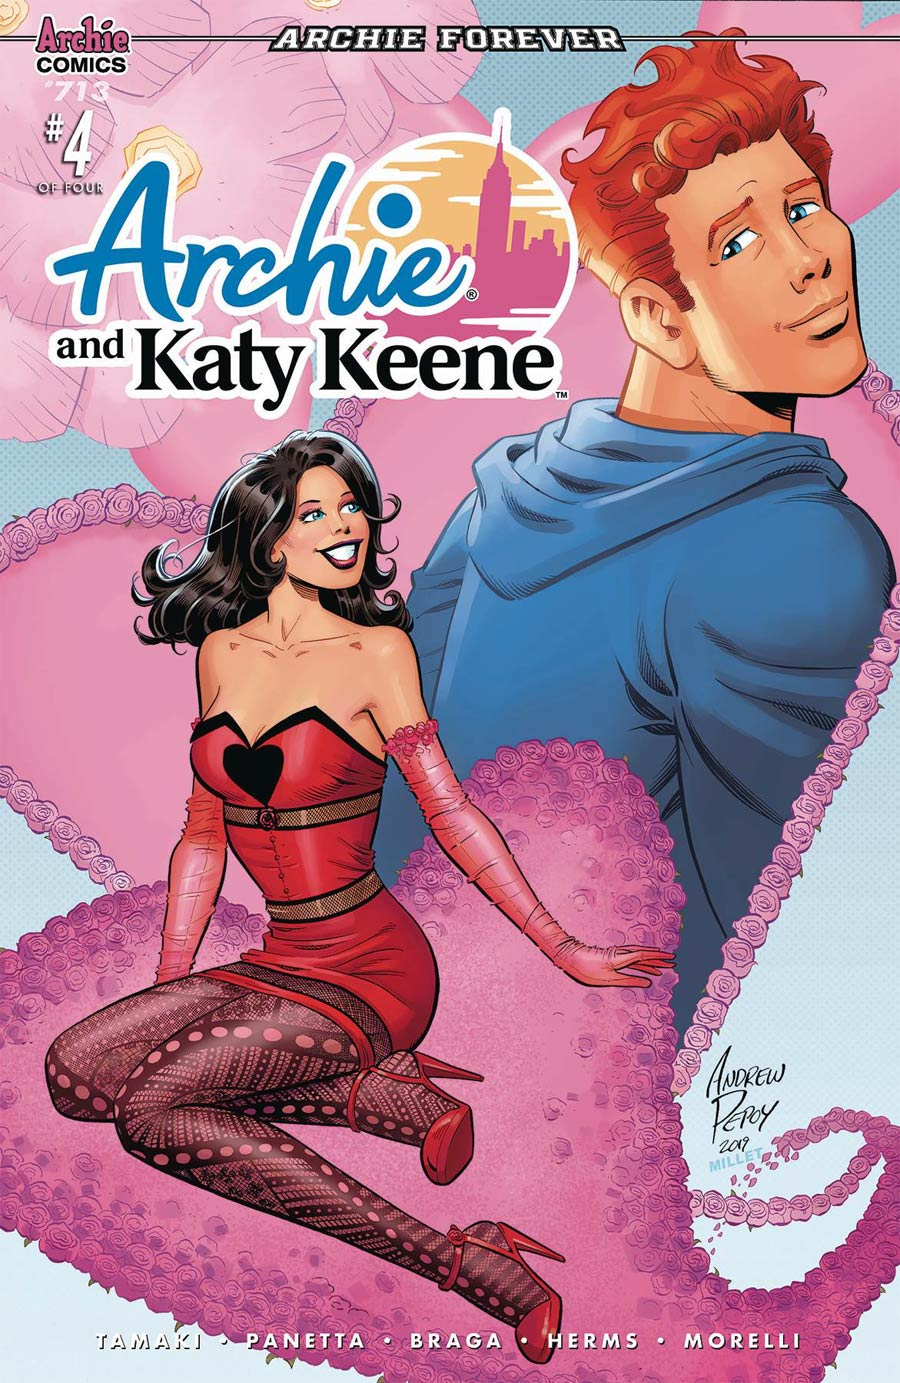 Archie Vol 2 #713 Archie And Katy Keene Part 4 Cover B Variant Andrew Pepoy & Jason Millet Cover